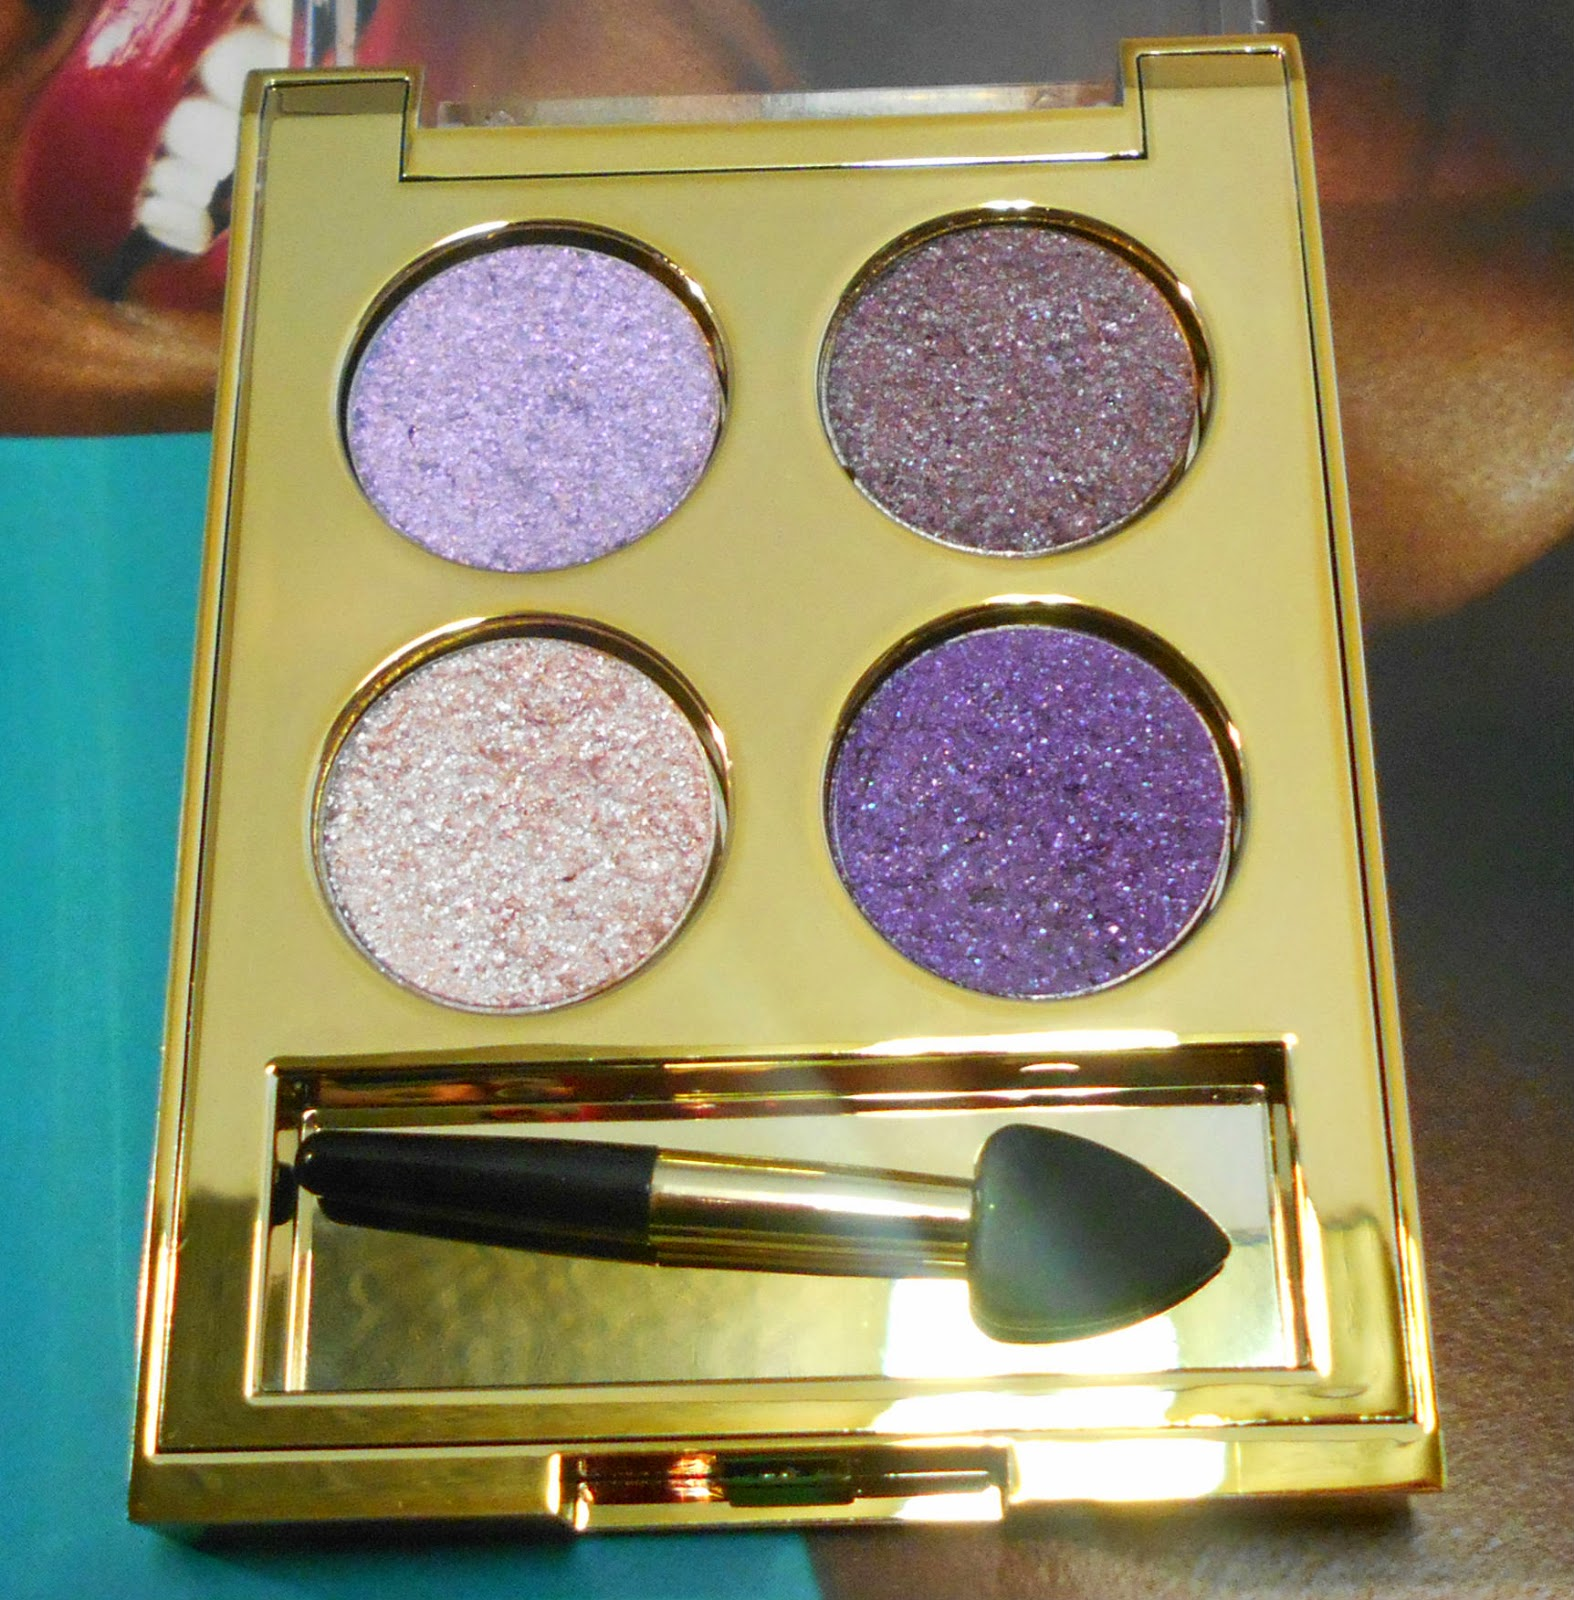 Milani Fierce Foil Eye Shine in Rome